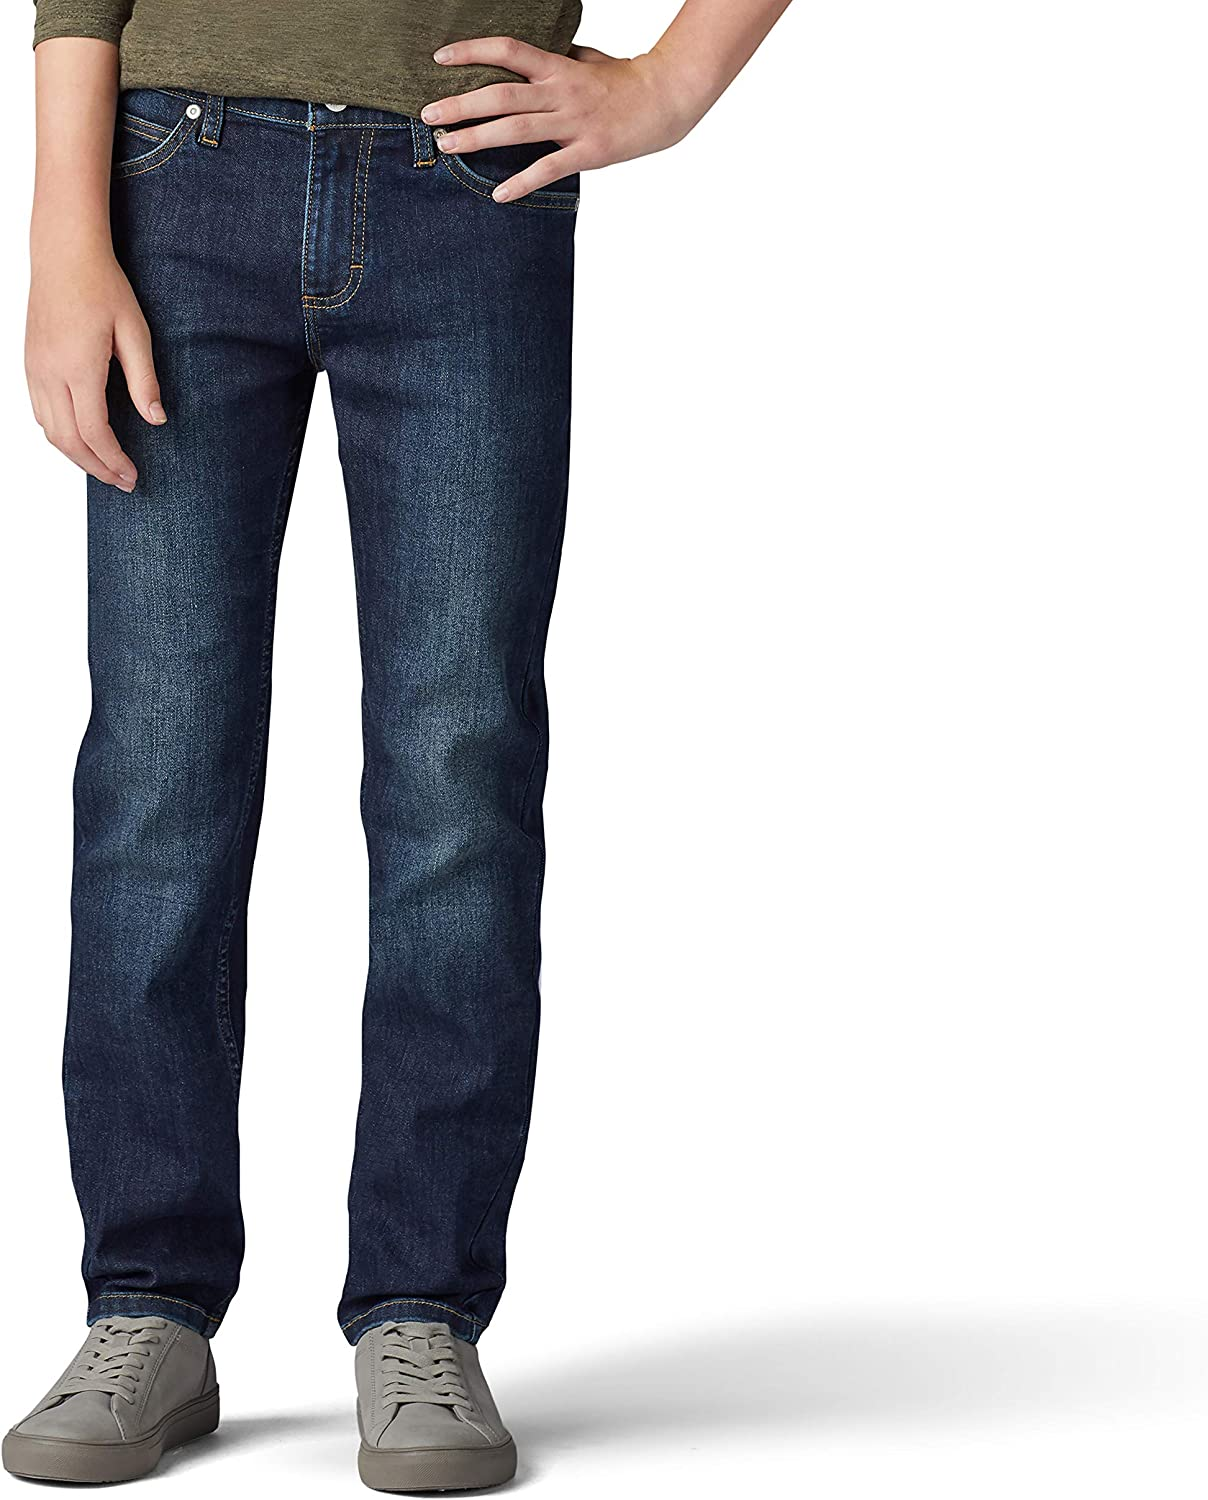 Lee Boy Proof Slim free shipping Indianapolis Mall Fit Jean Tapered Leg